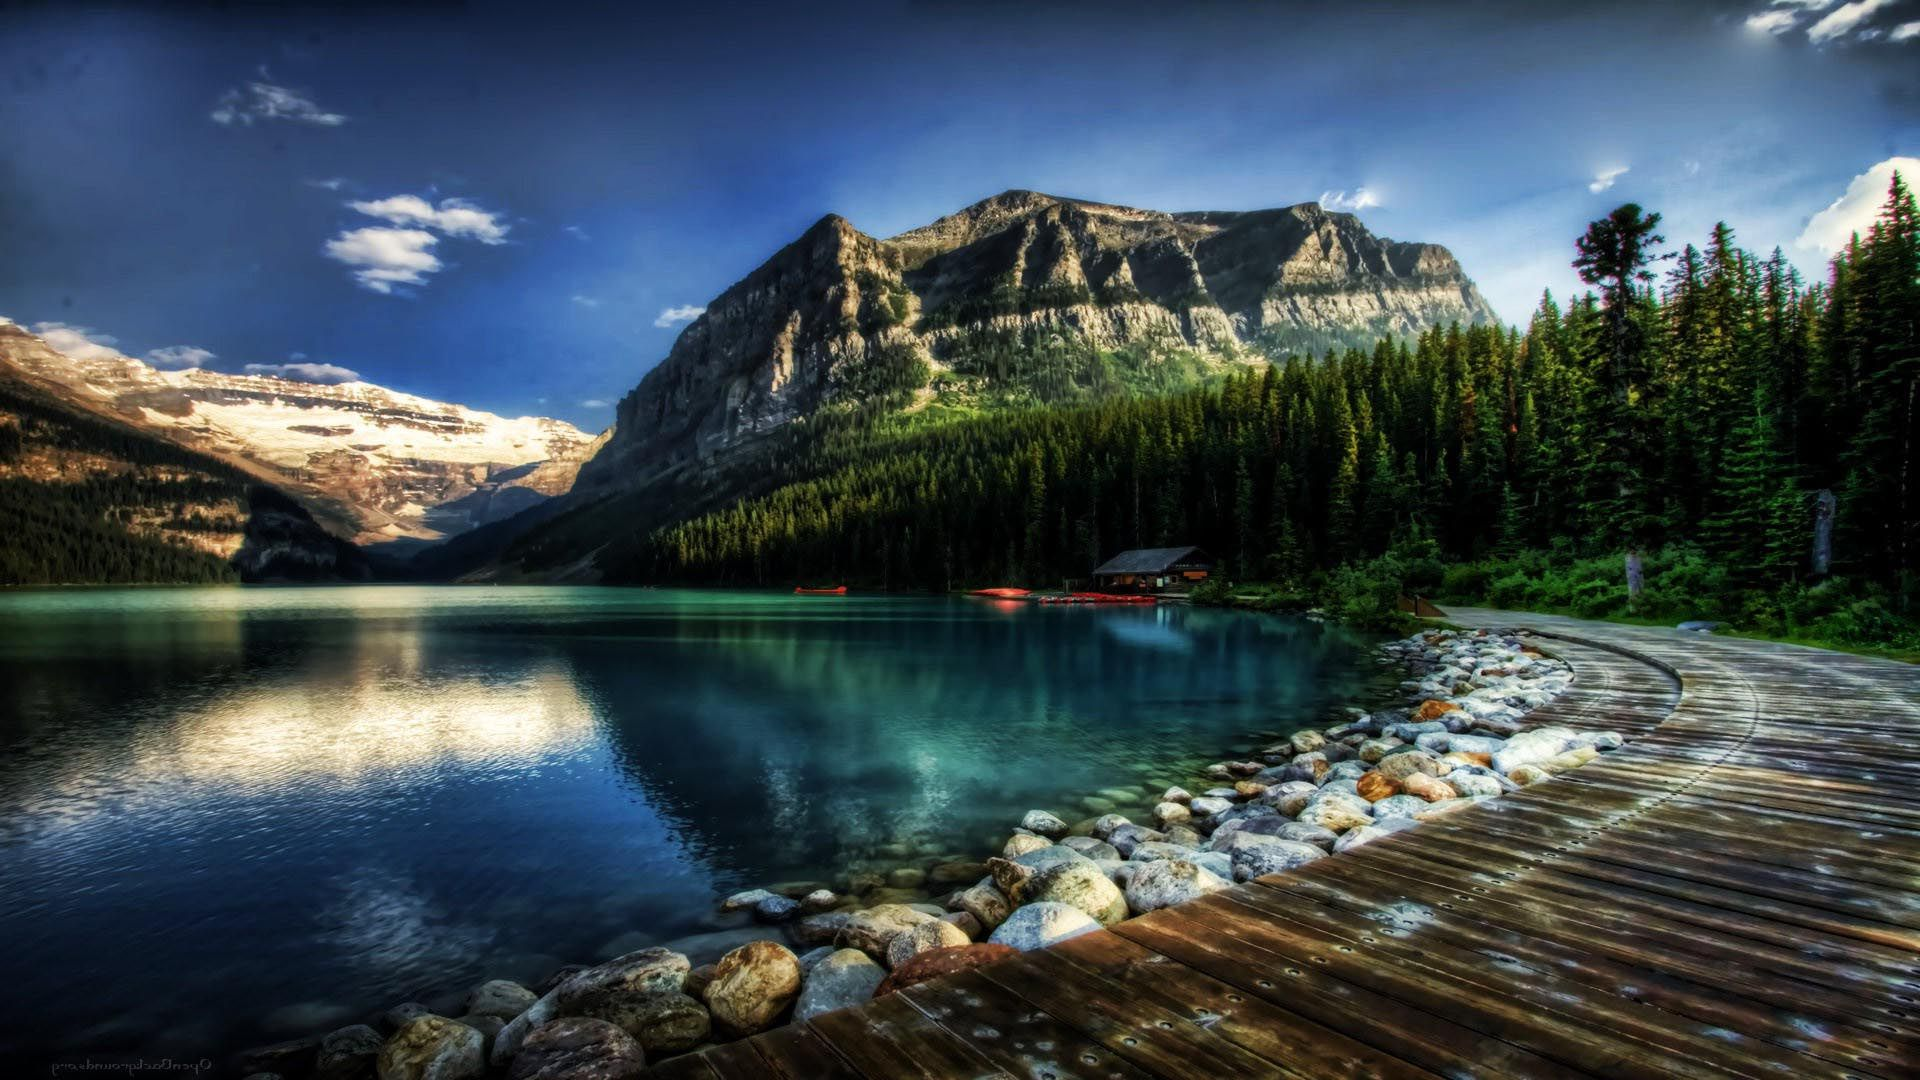 Fantastic-lake-louise-in-alberta-canada-hdr-wallpapers-hd